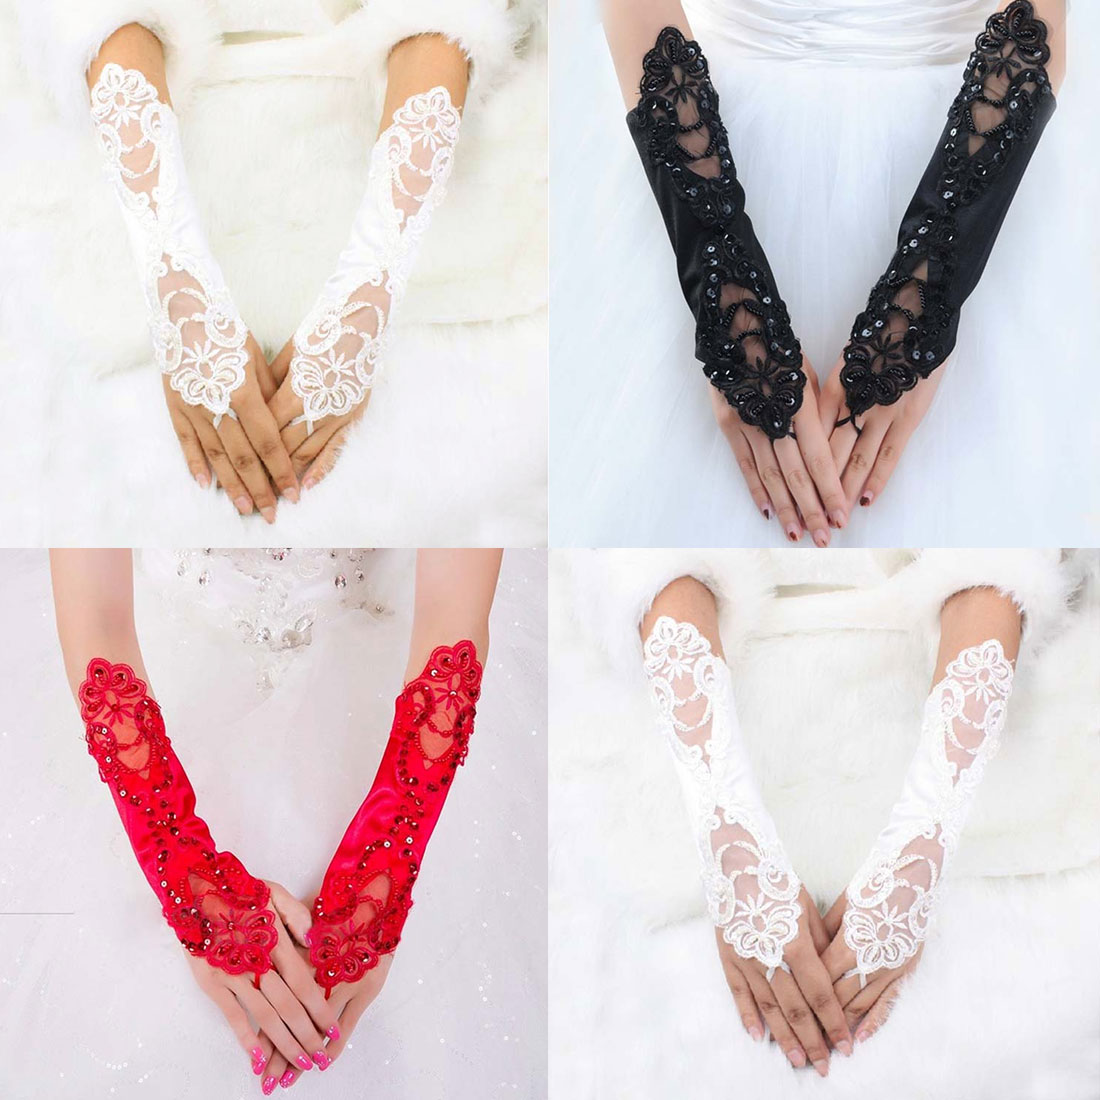 1 Pair Women Bride Long Lace Arm Elbow Gloves Lace Fingerless Gloves Black Whites in Women 39 s Gloves from Apparel Accessories